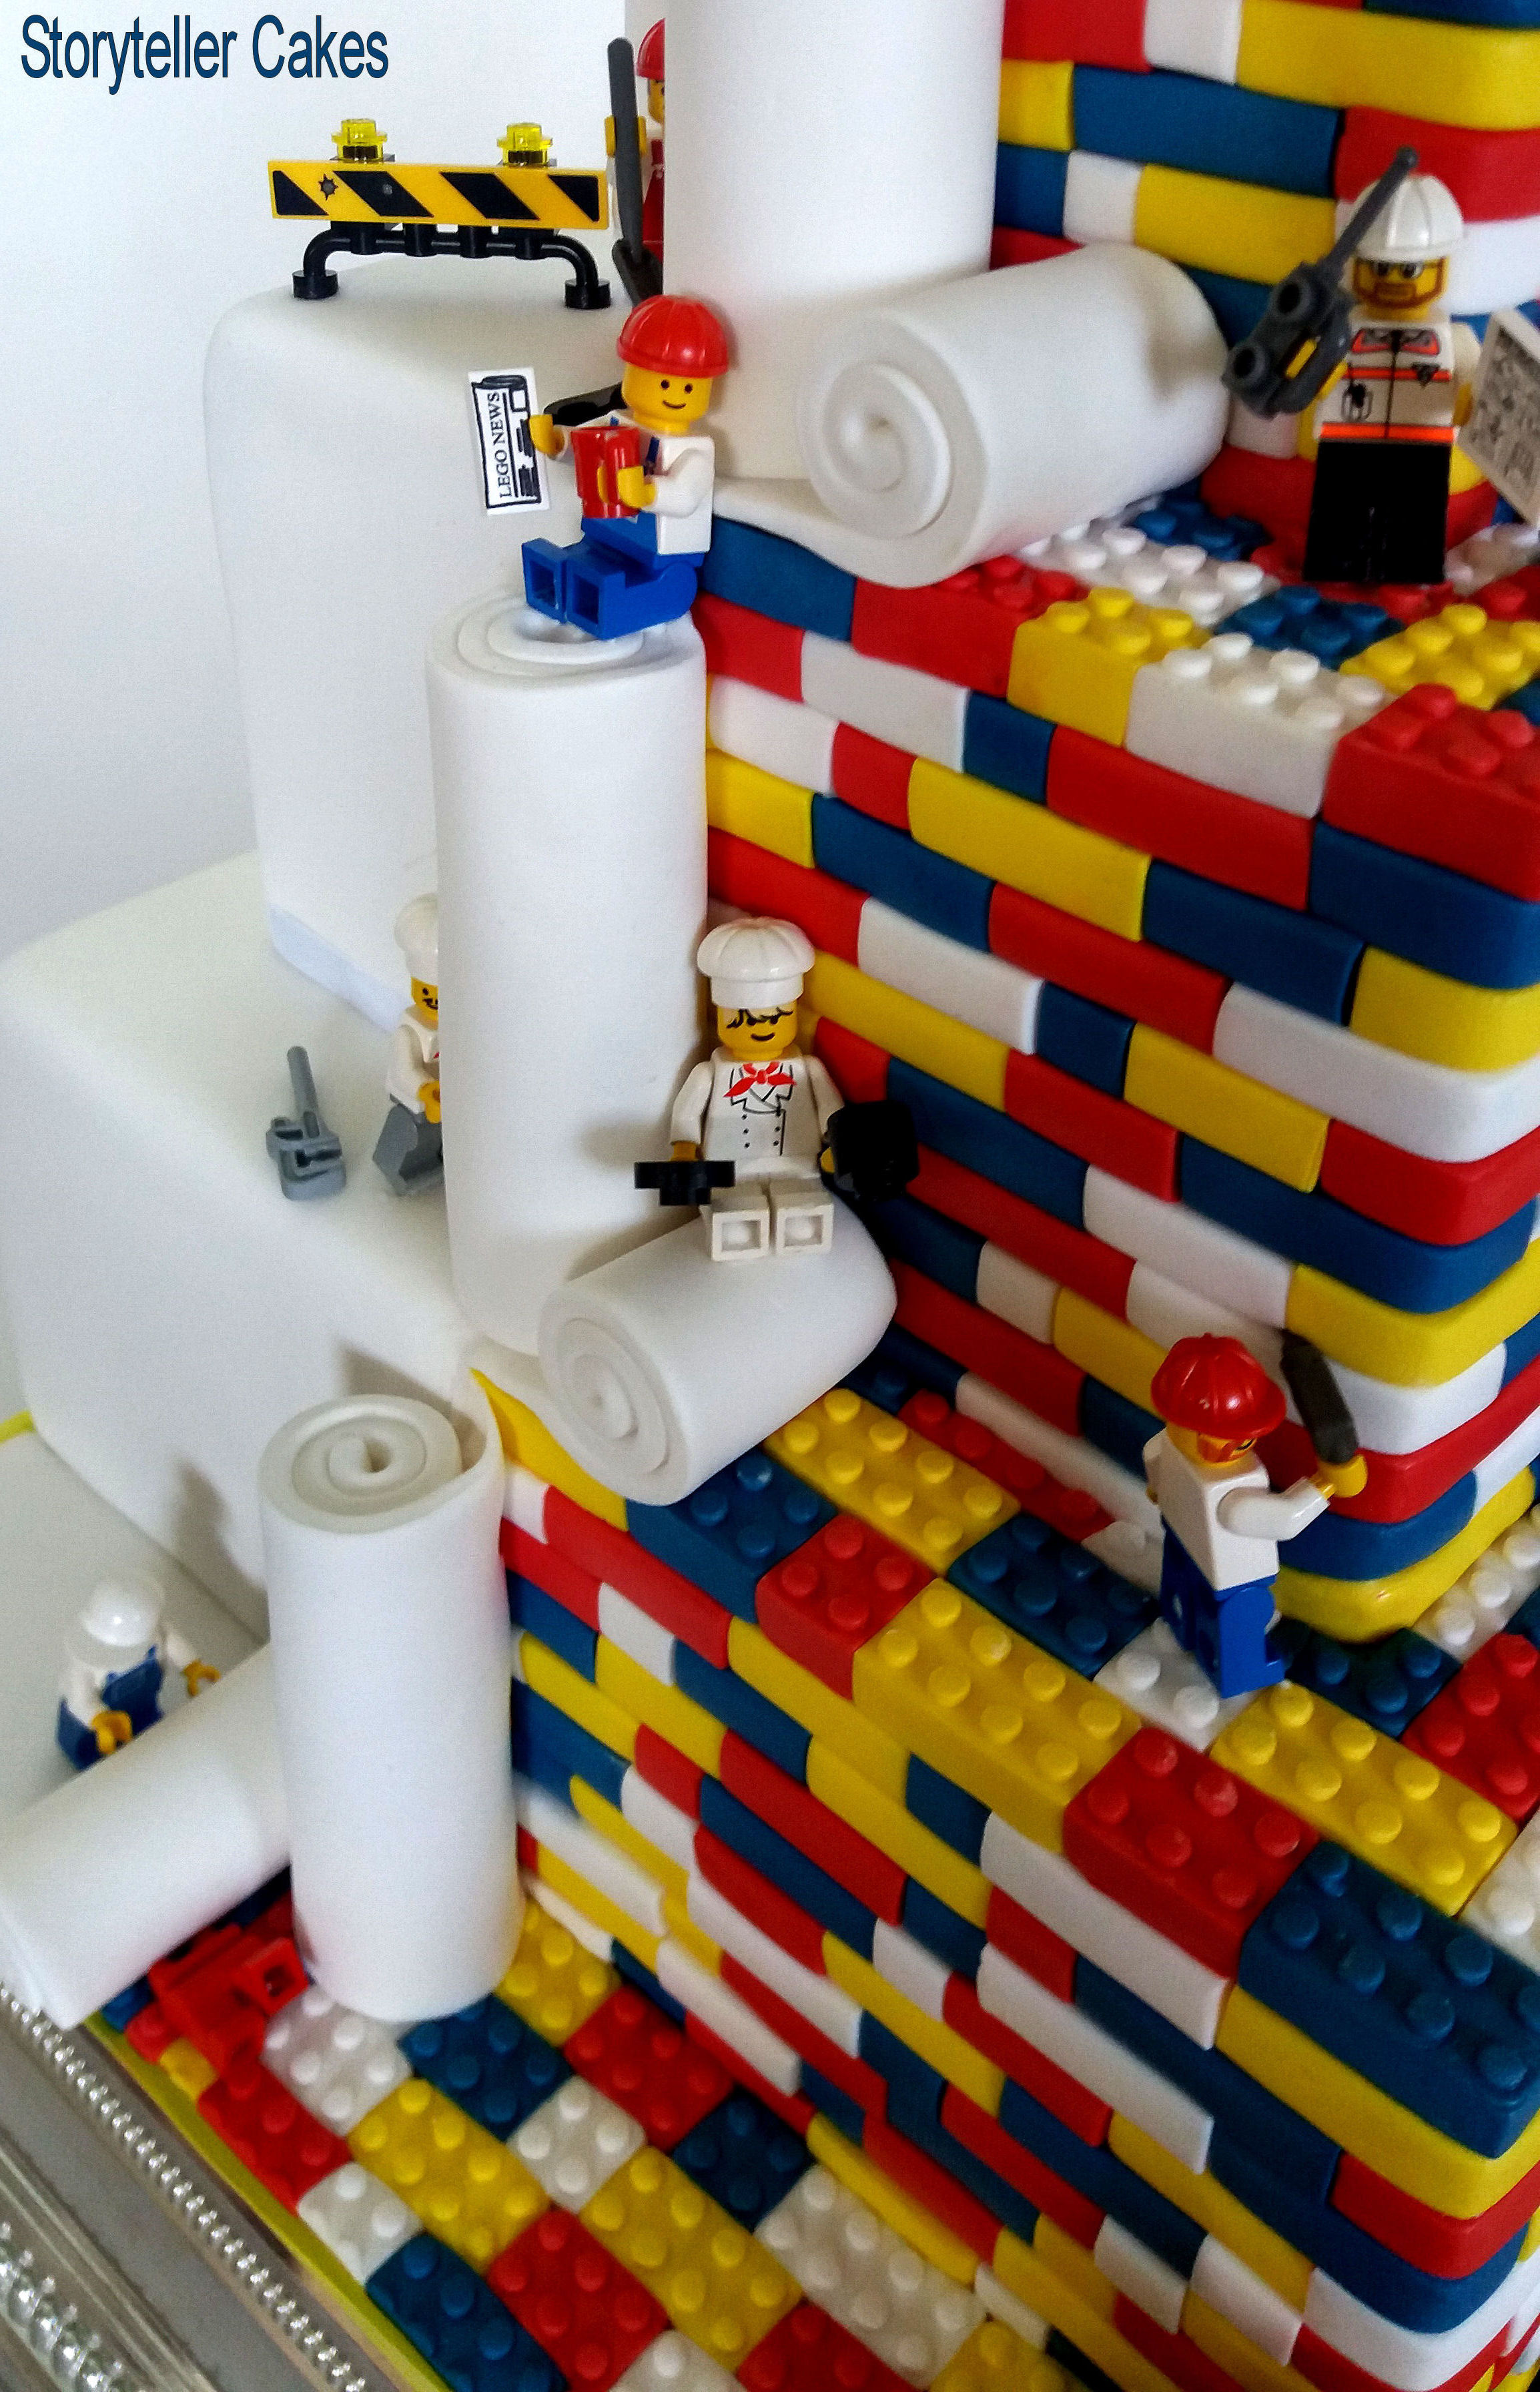 Lego Wedding Cake 4.jpg